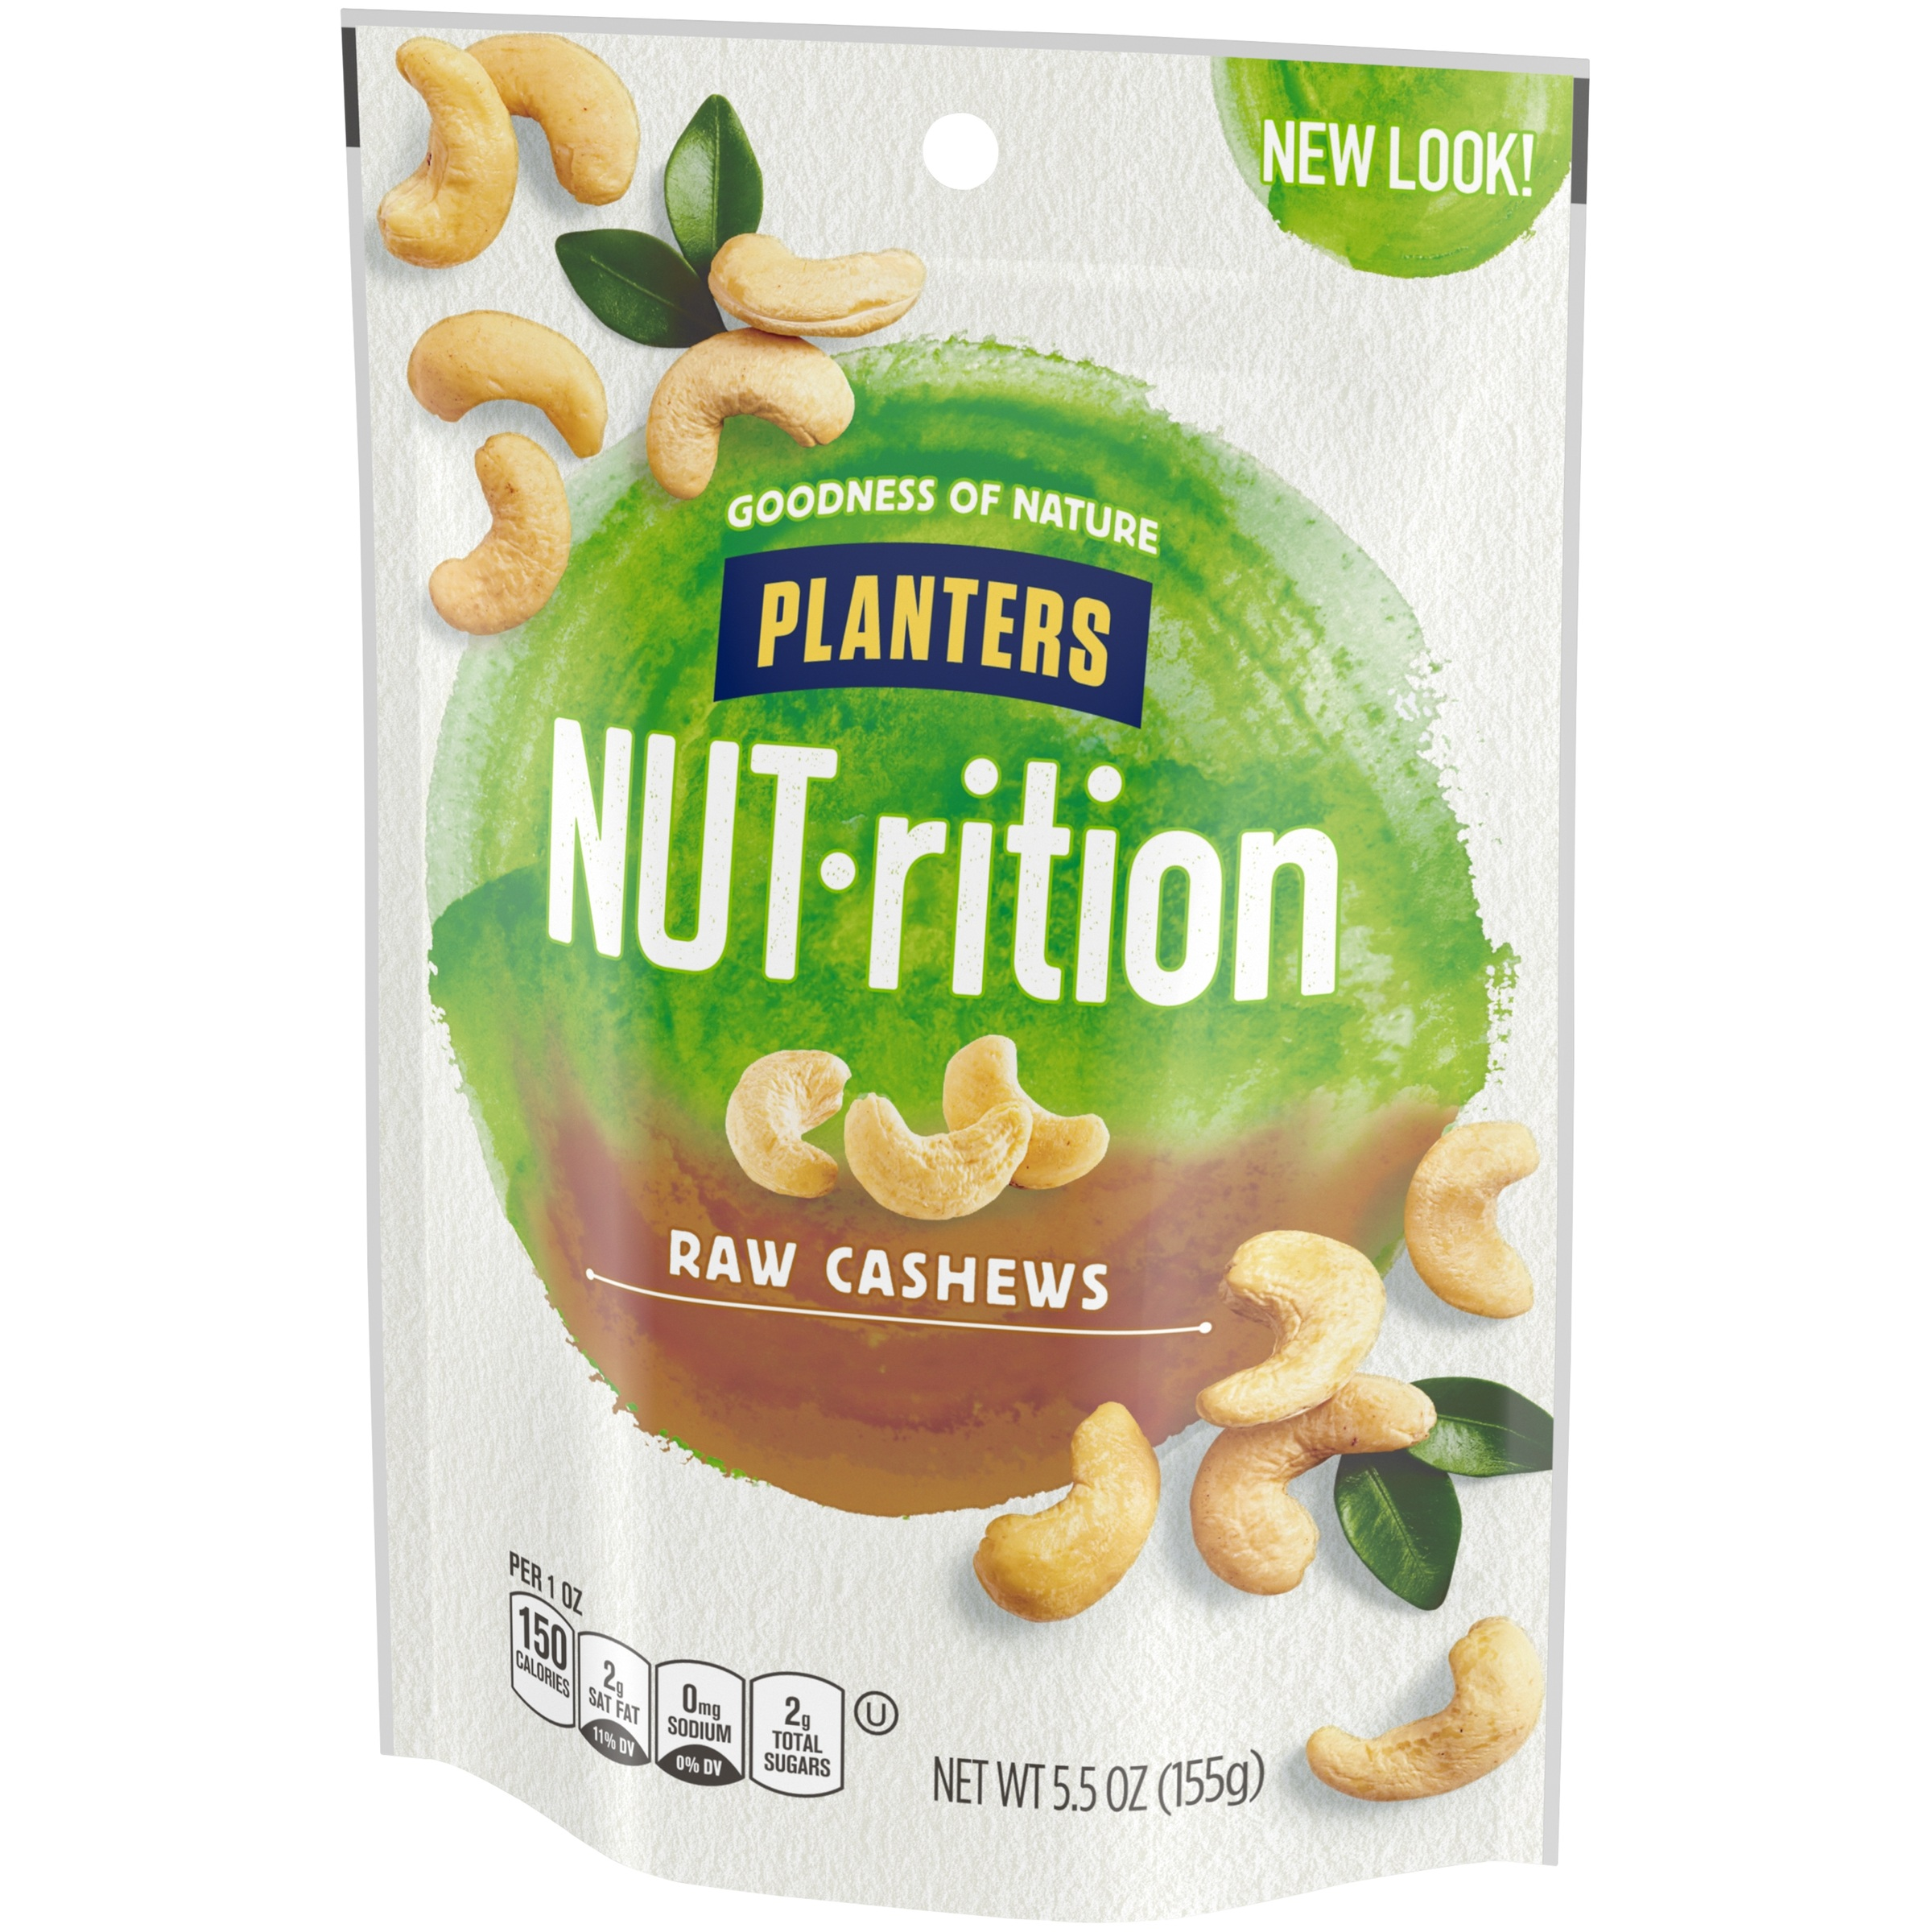 tb jsp j fd planters fast planter browse for delivery freshdirect gro sltcshw cashews shop